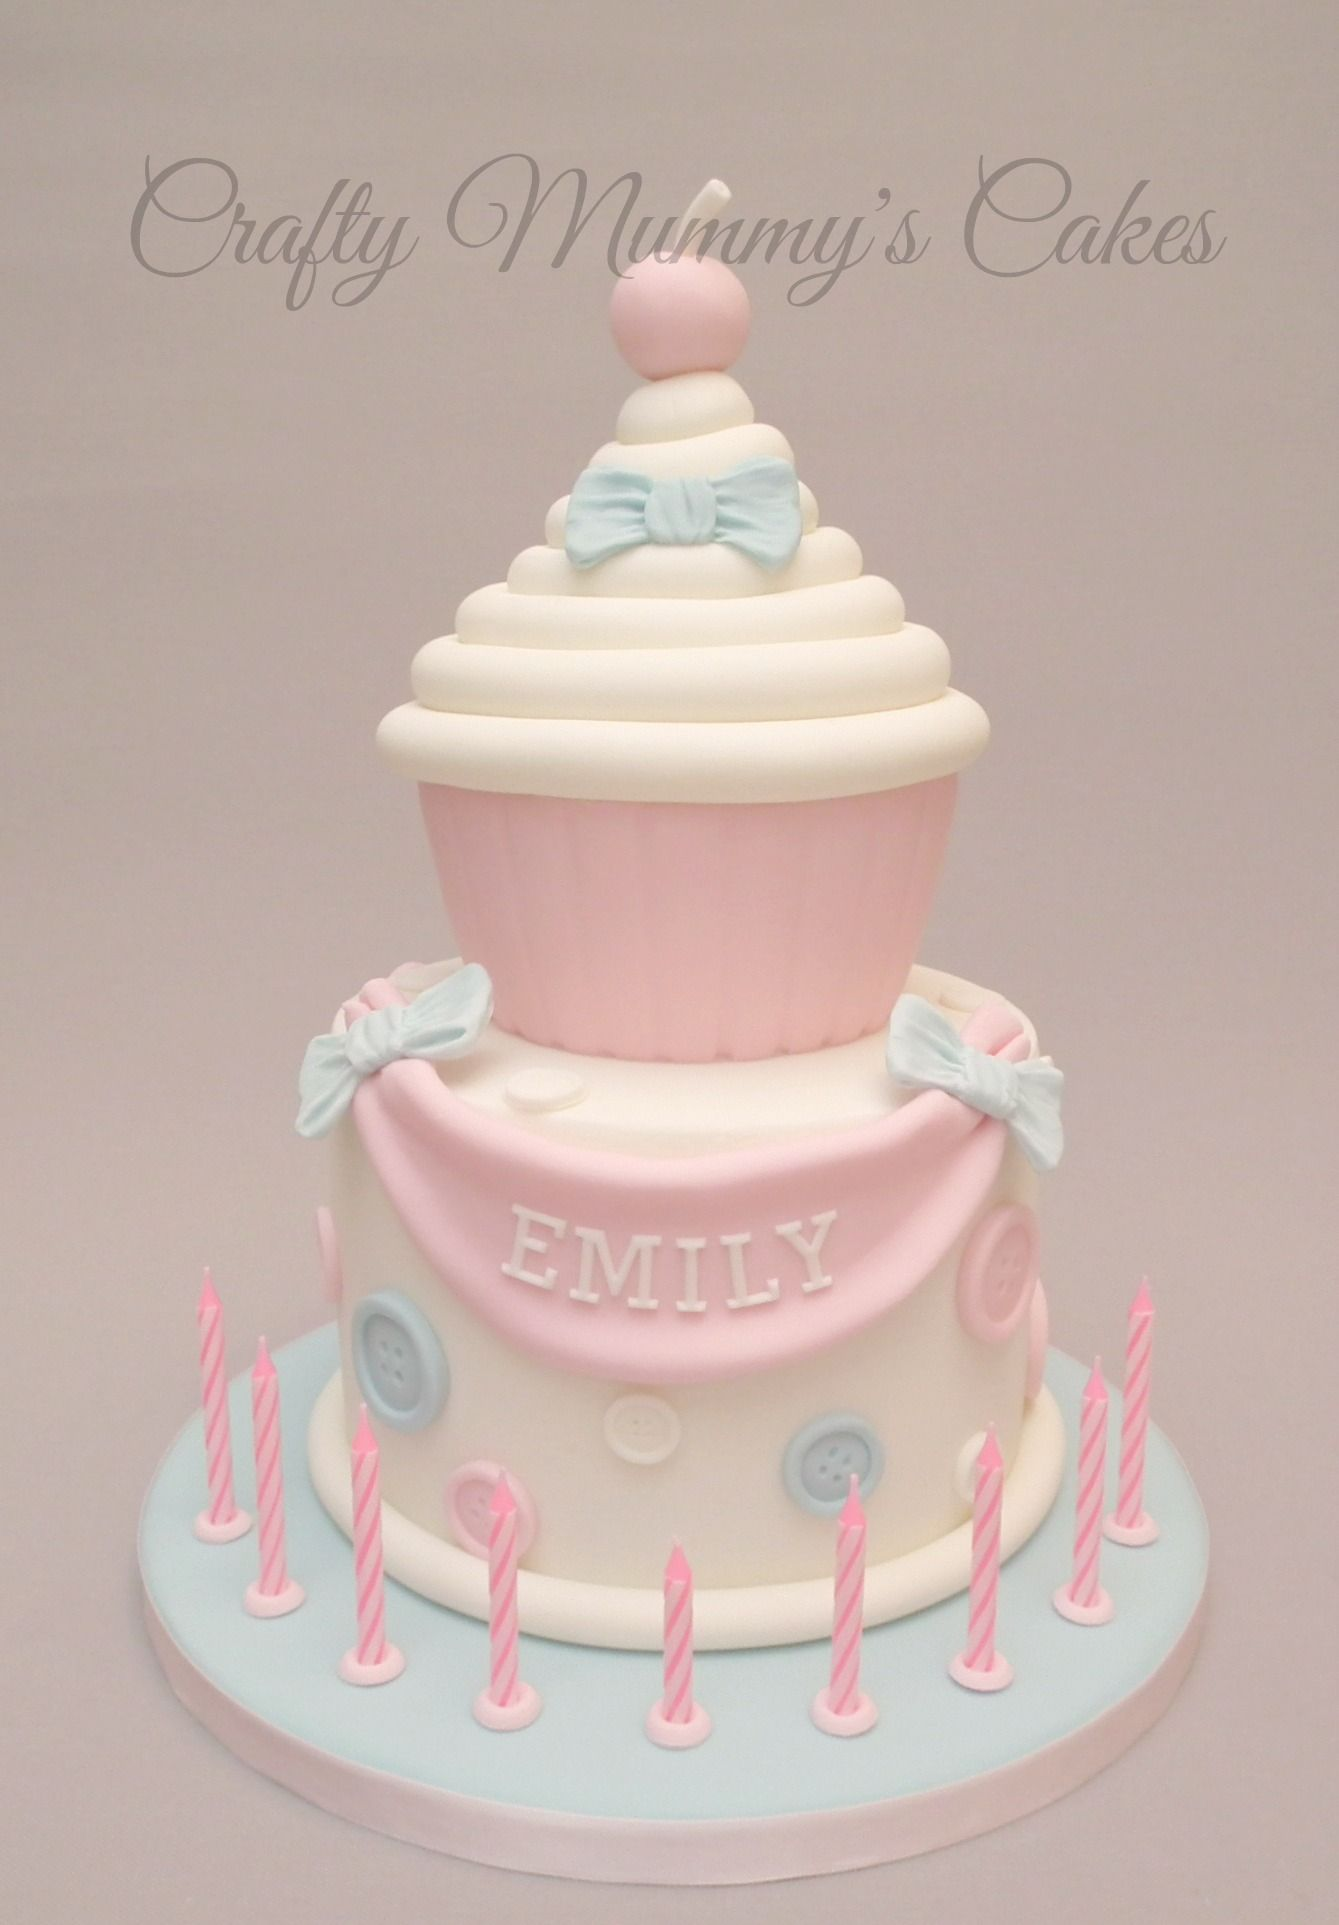 Giant cupcake cake with buttons. https://www.facebook.com/CraftyMummysCakes/